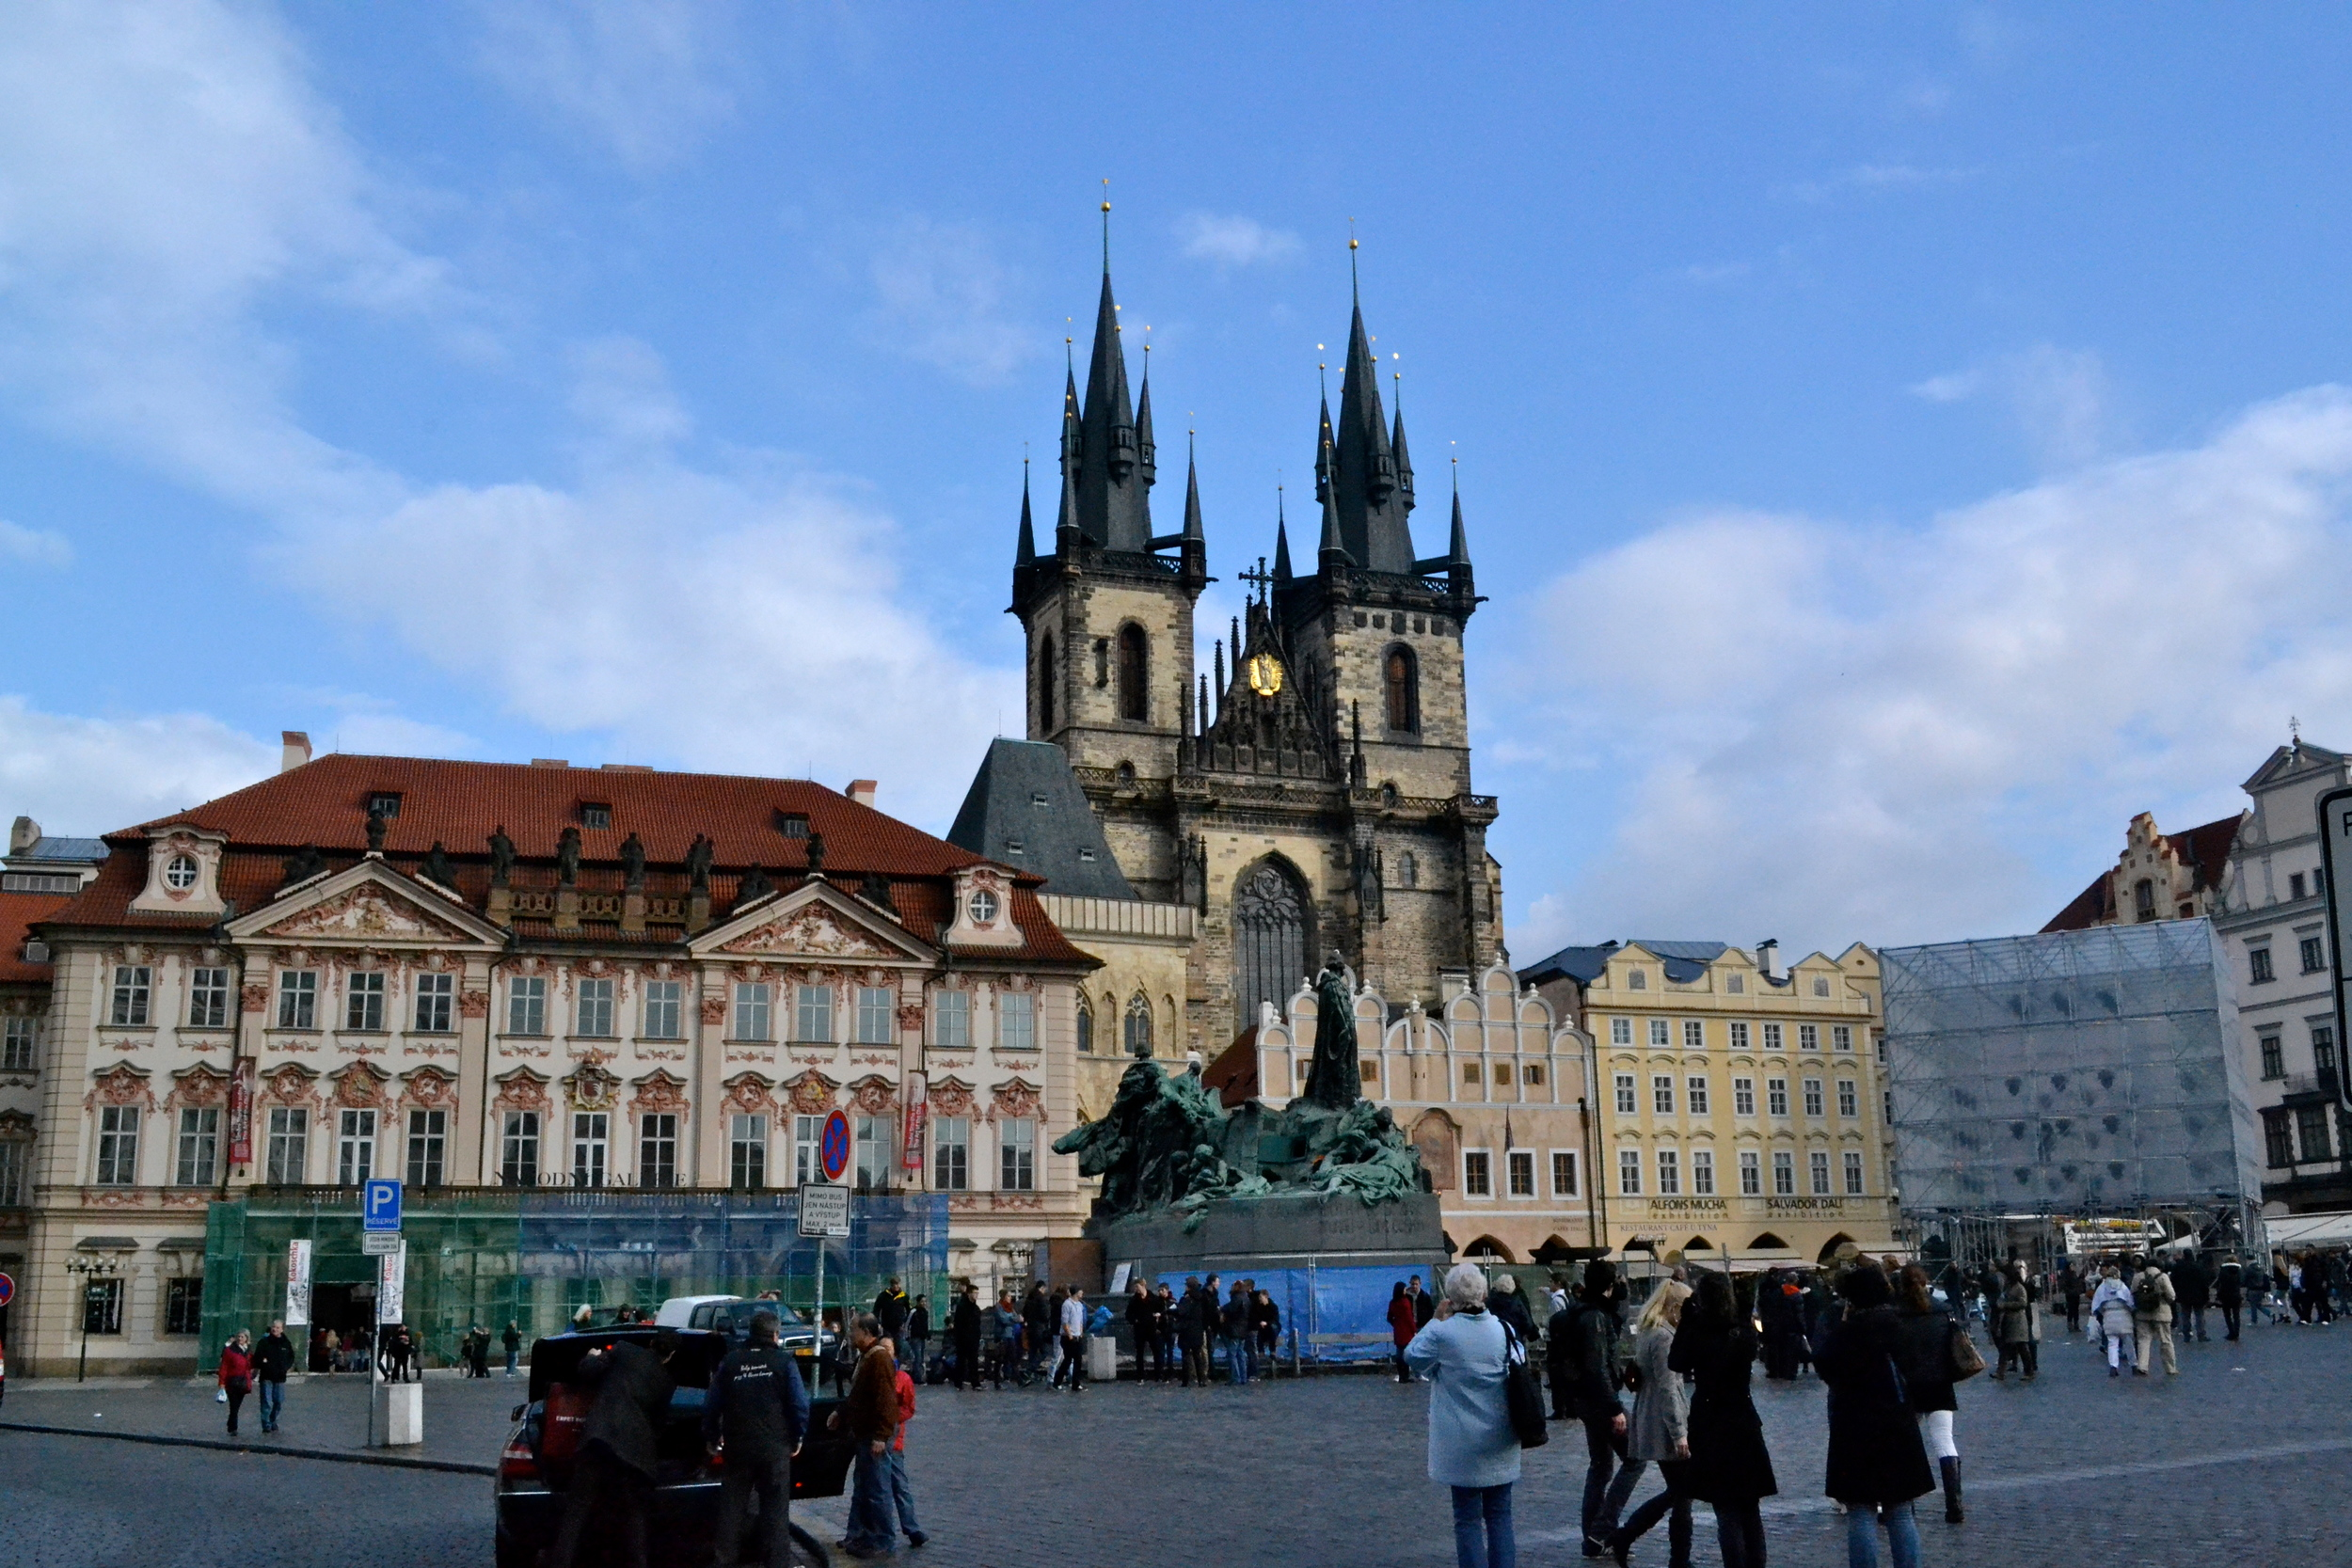 Some of the buildings along the Old Town Square (including the Tyn Church)